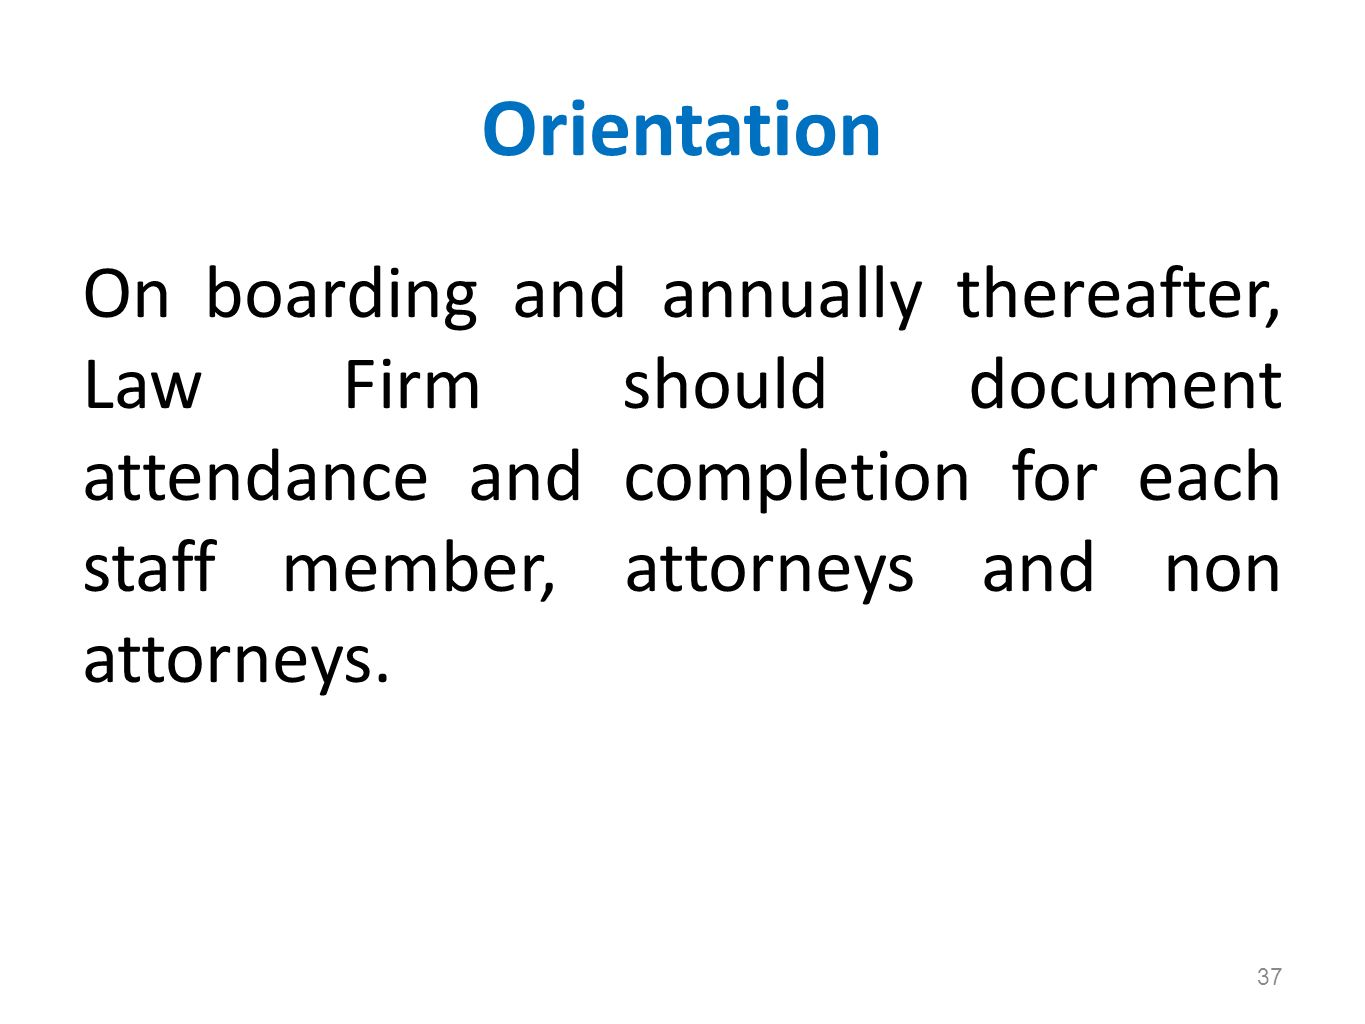 Orientation On boarding and annually thereafter, Law Firm should document attendance and completion for each staff member, attorneys and non attorneys